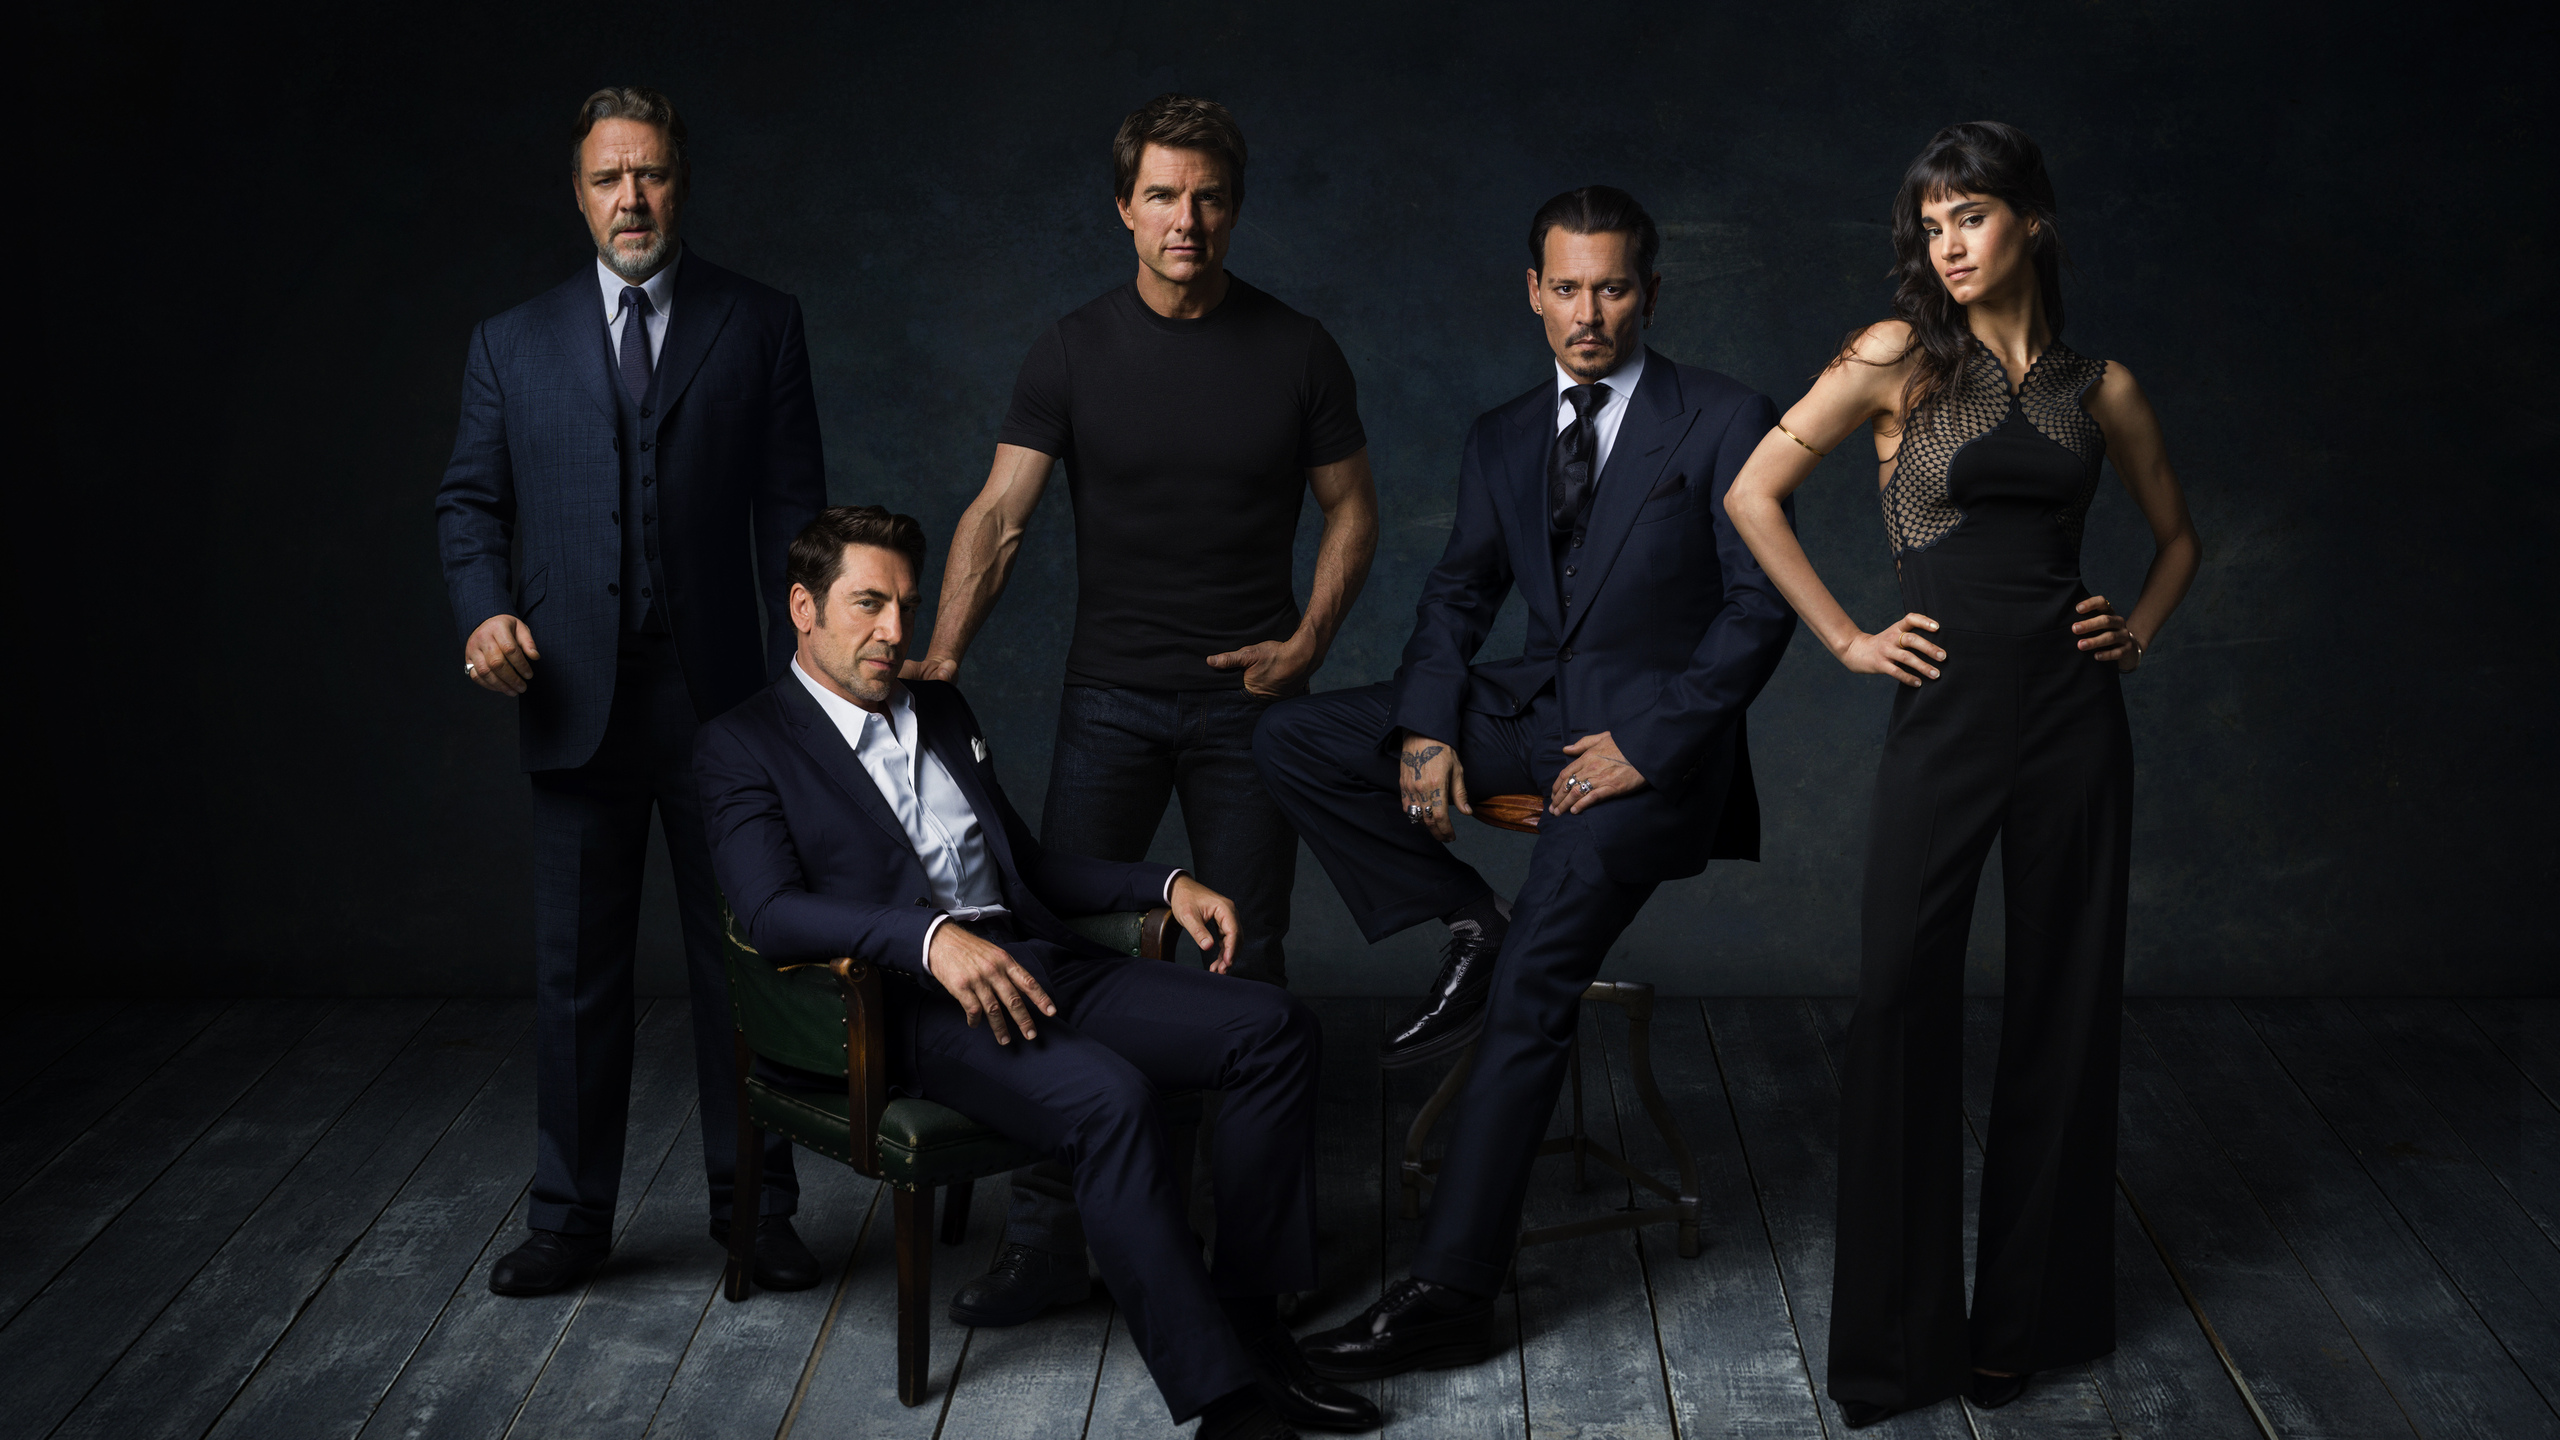 dark-universe-russell-crowe-javier-bardem-tom-cruise-johnny-depp-and-sofia-boutella-vi.jpg